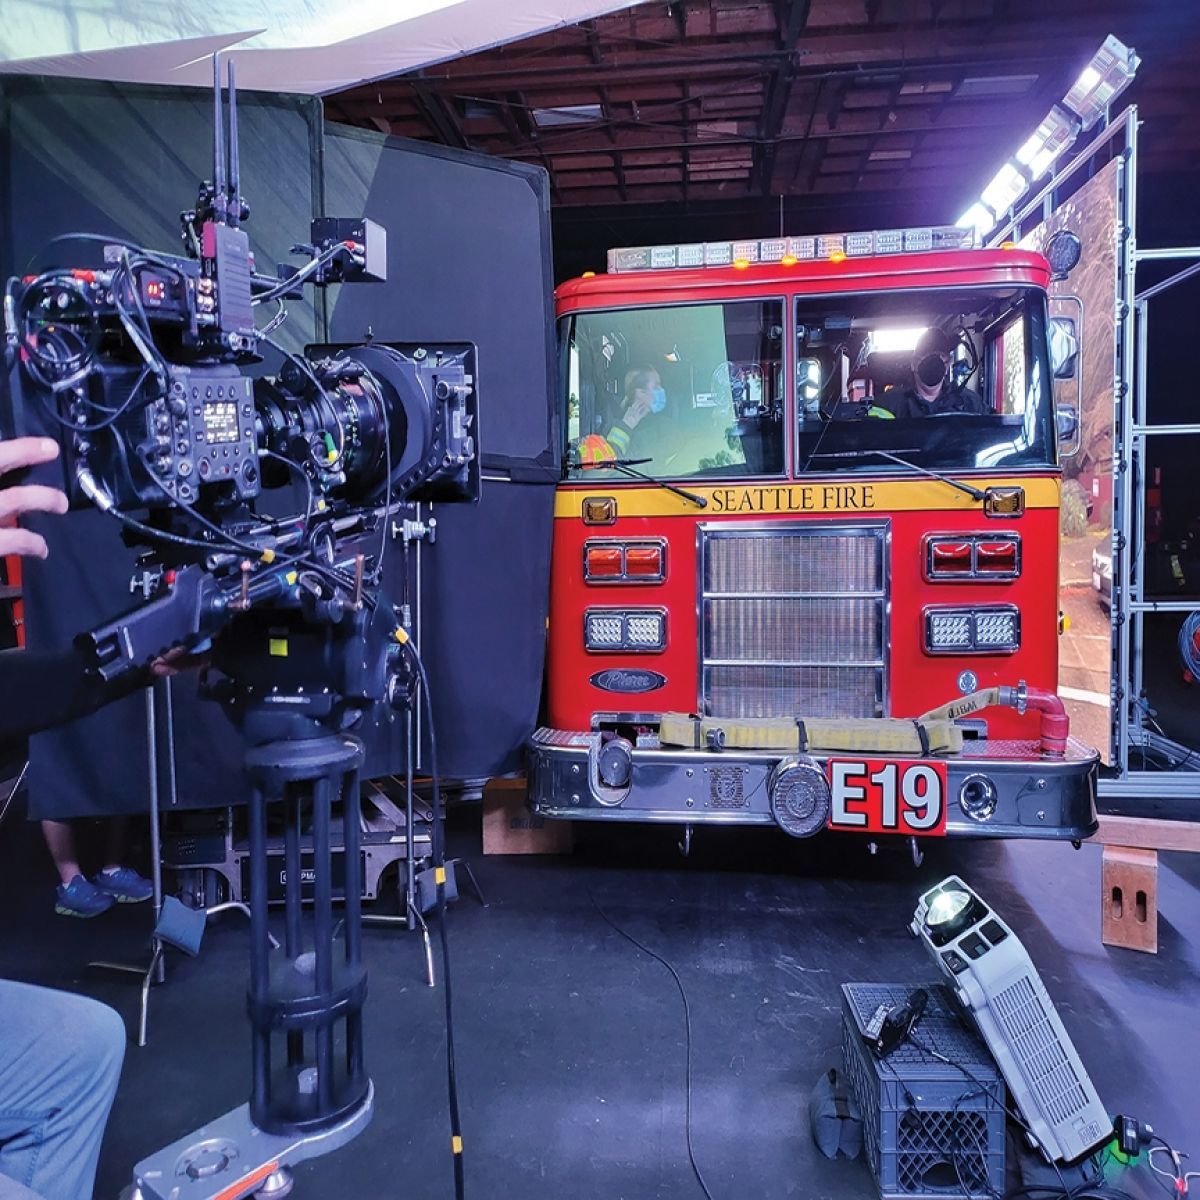 The ABC series Station 19 has adopted in-camera visual effects for driving scenes, with the aid of LED-wall and virtual-production systems at Stargate Studios. (Photo courtesy of Sam Nicholson, ASC.)